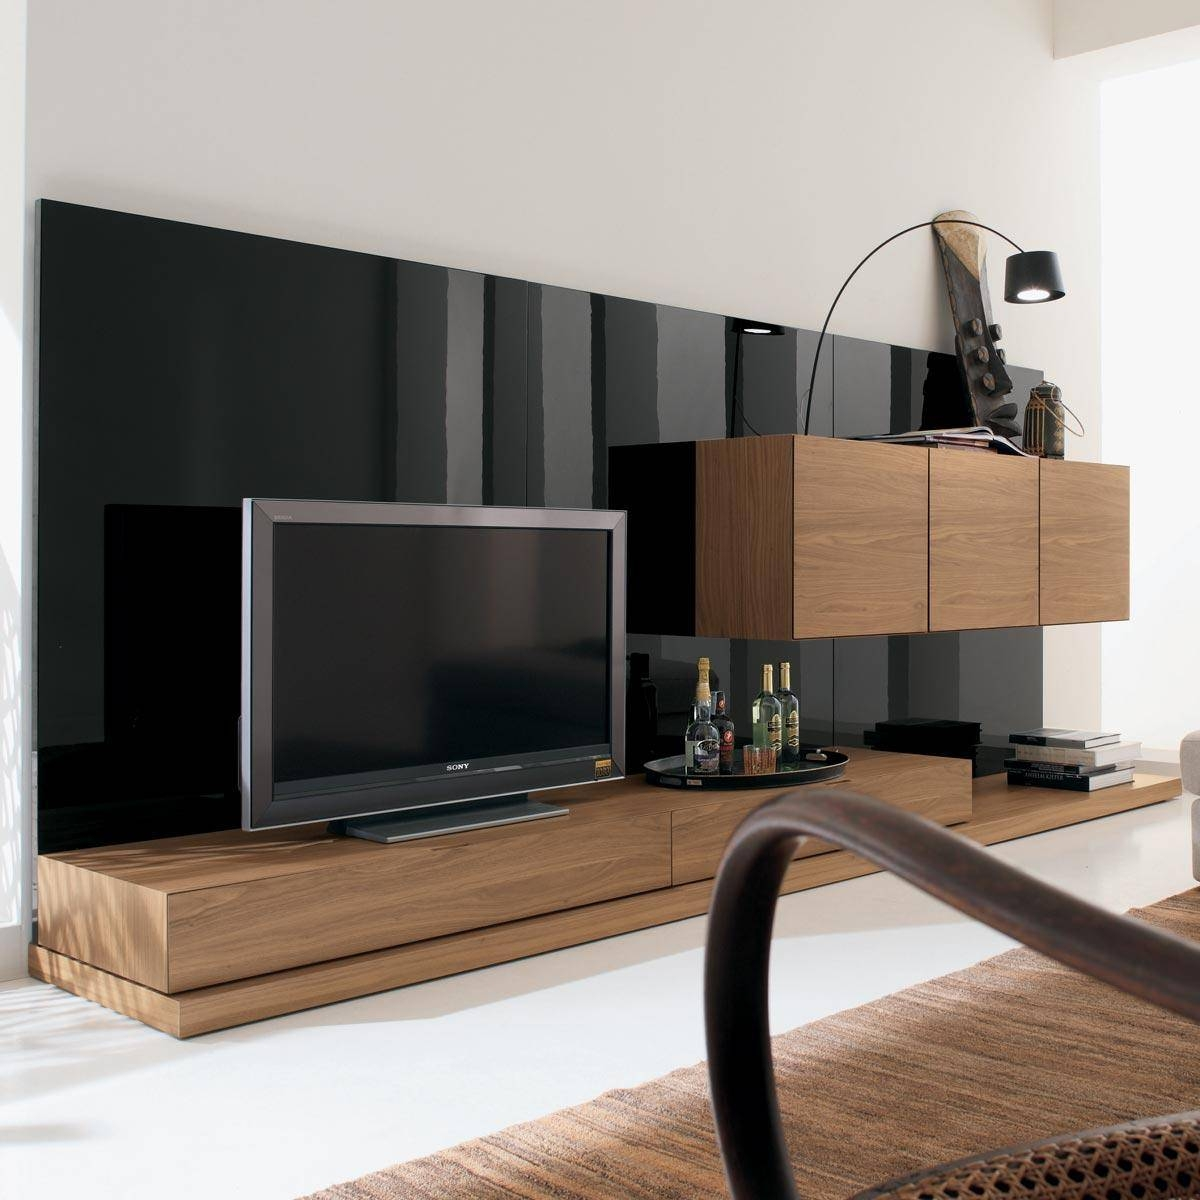 Small Modern Tv Unit Choosing Between Small And Big Tv Stands - La throughout Big Tv Stands Furniture (Image 10 of 15)